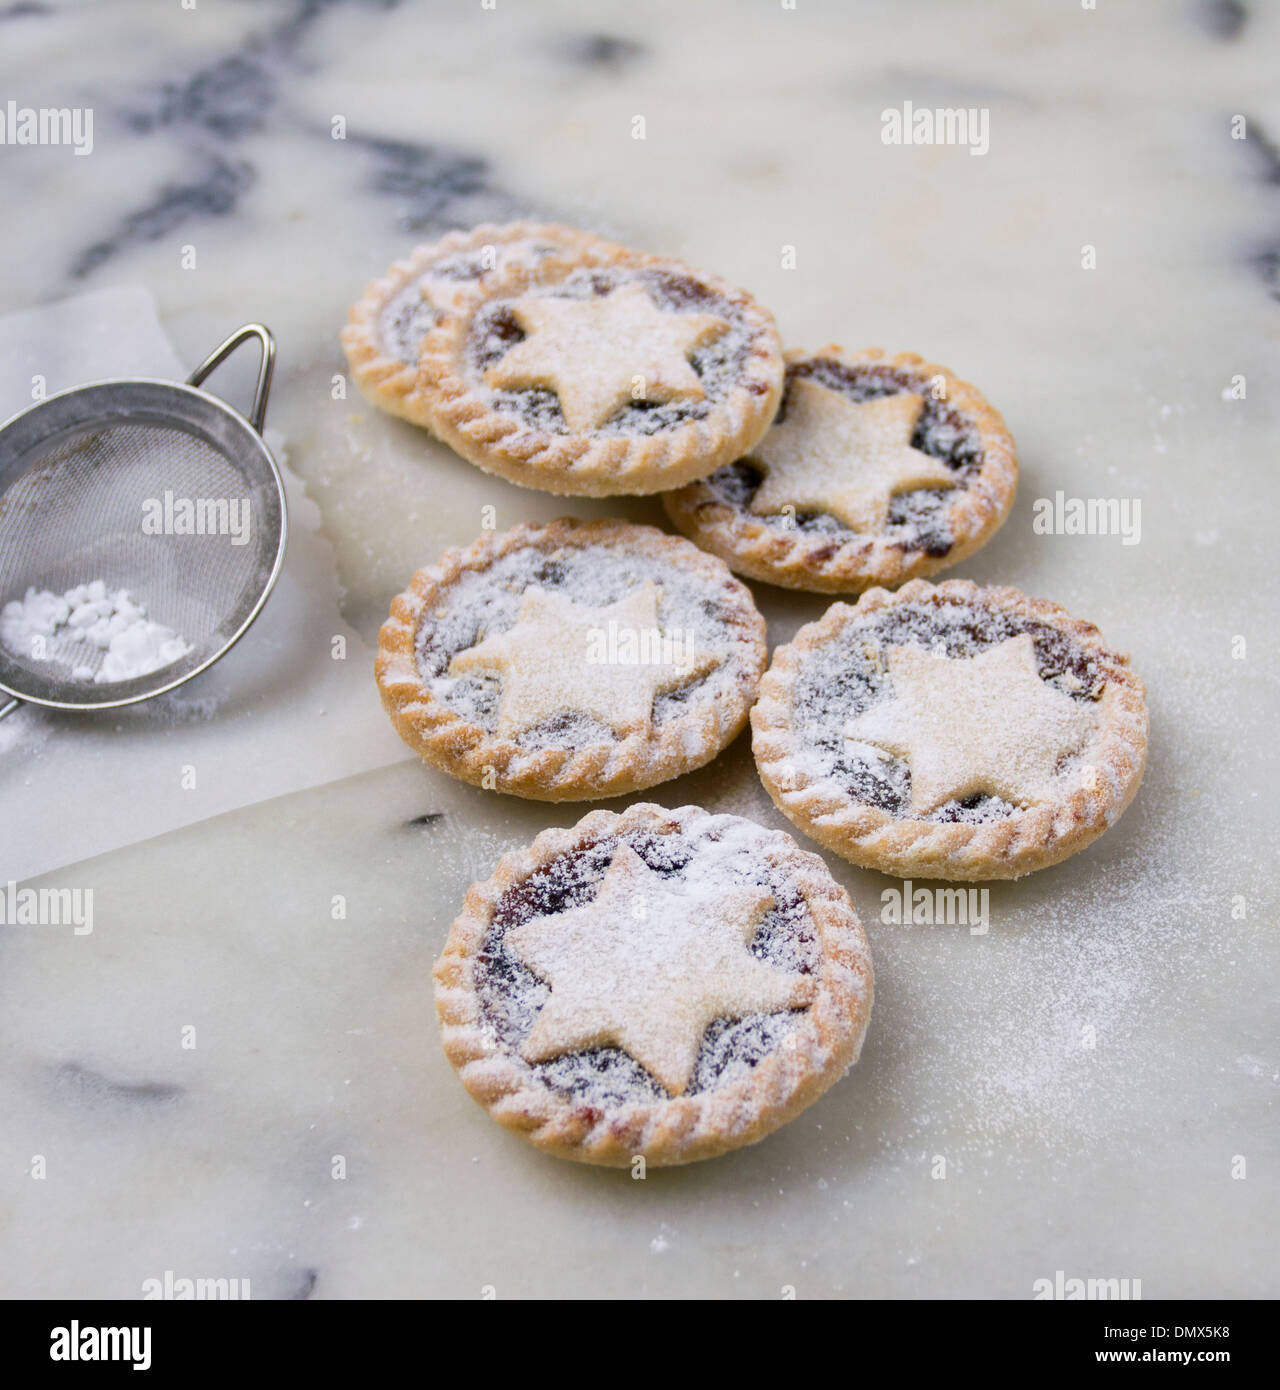 Home made icing sugar dusted mince pies on a grey marble surface - Stock Image